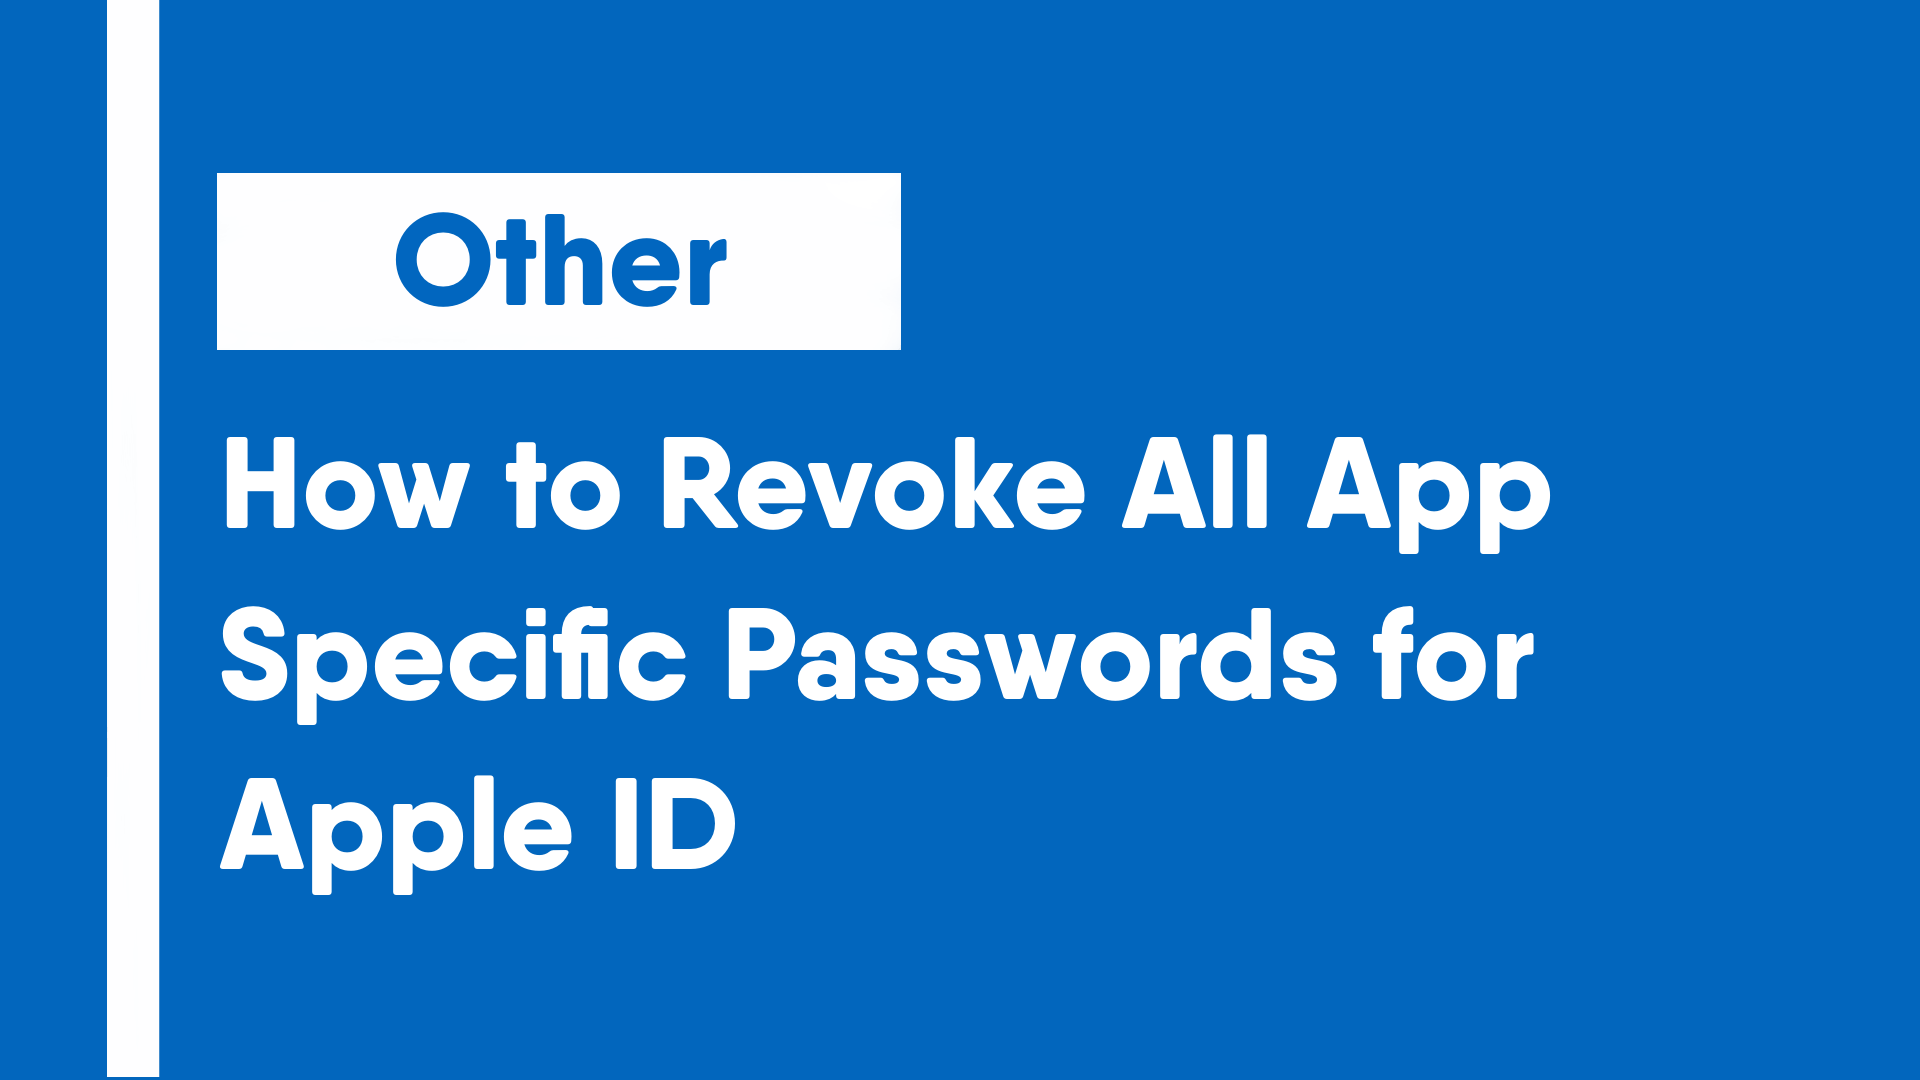 How to Revoke All App Specific Passwords for Apple ID